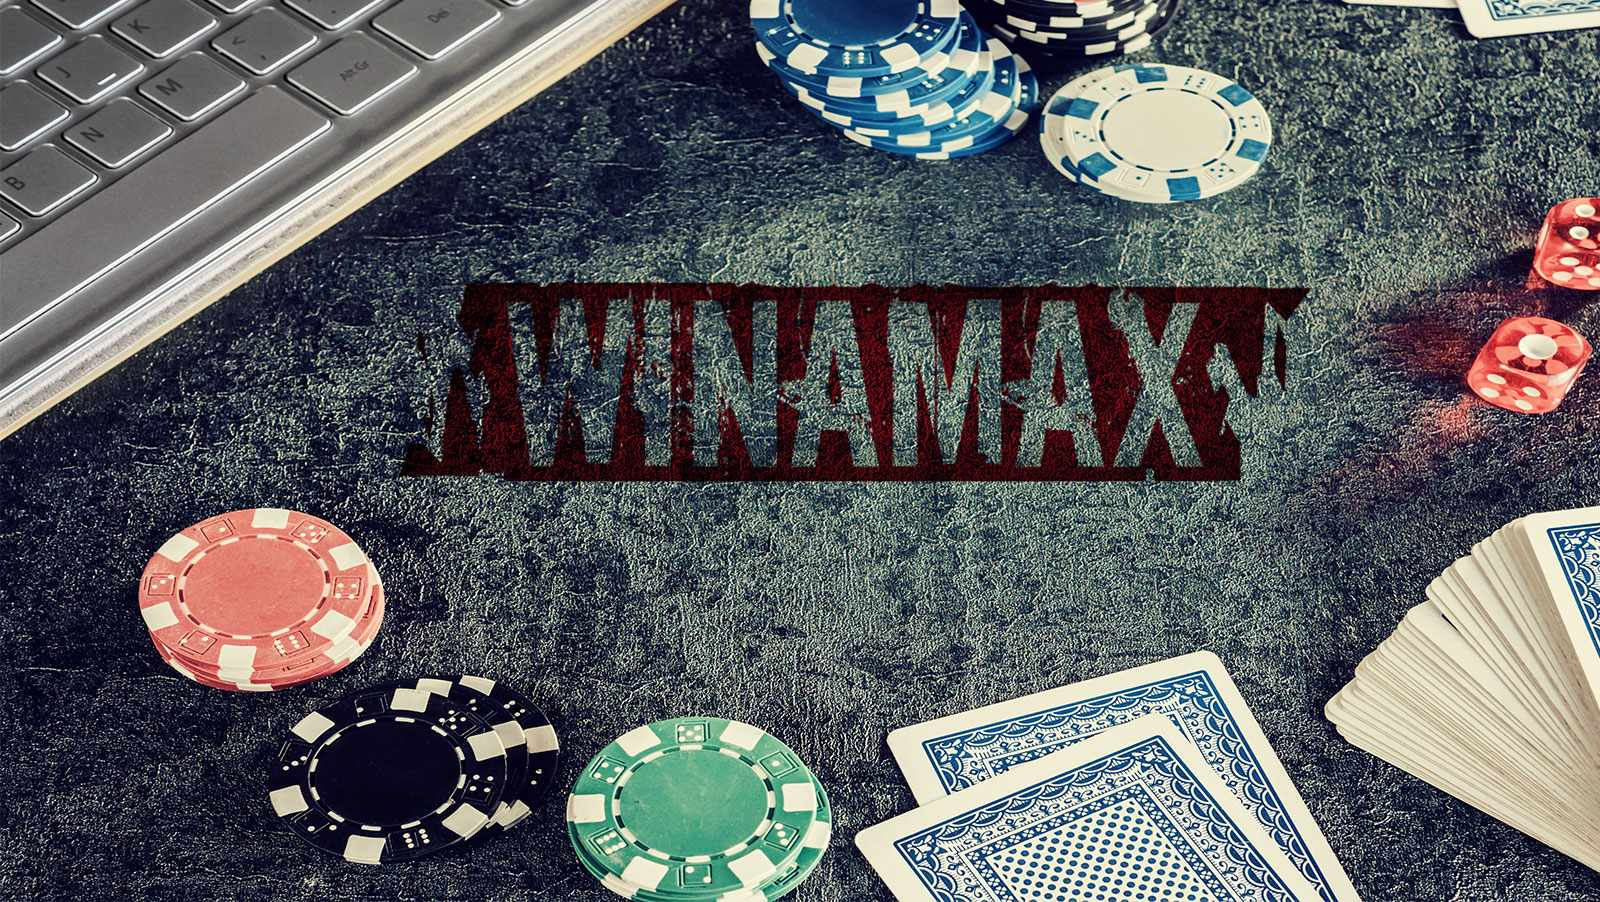 Winamax could jump into Franco-Spanish liquidity sharing by April